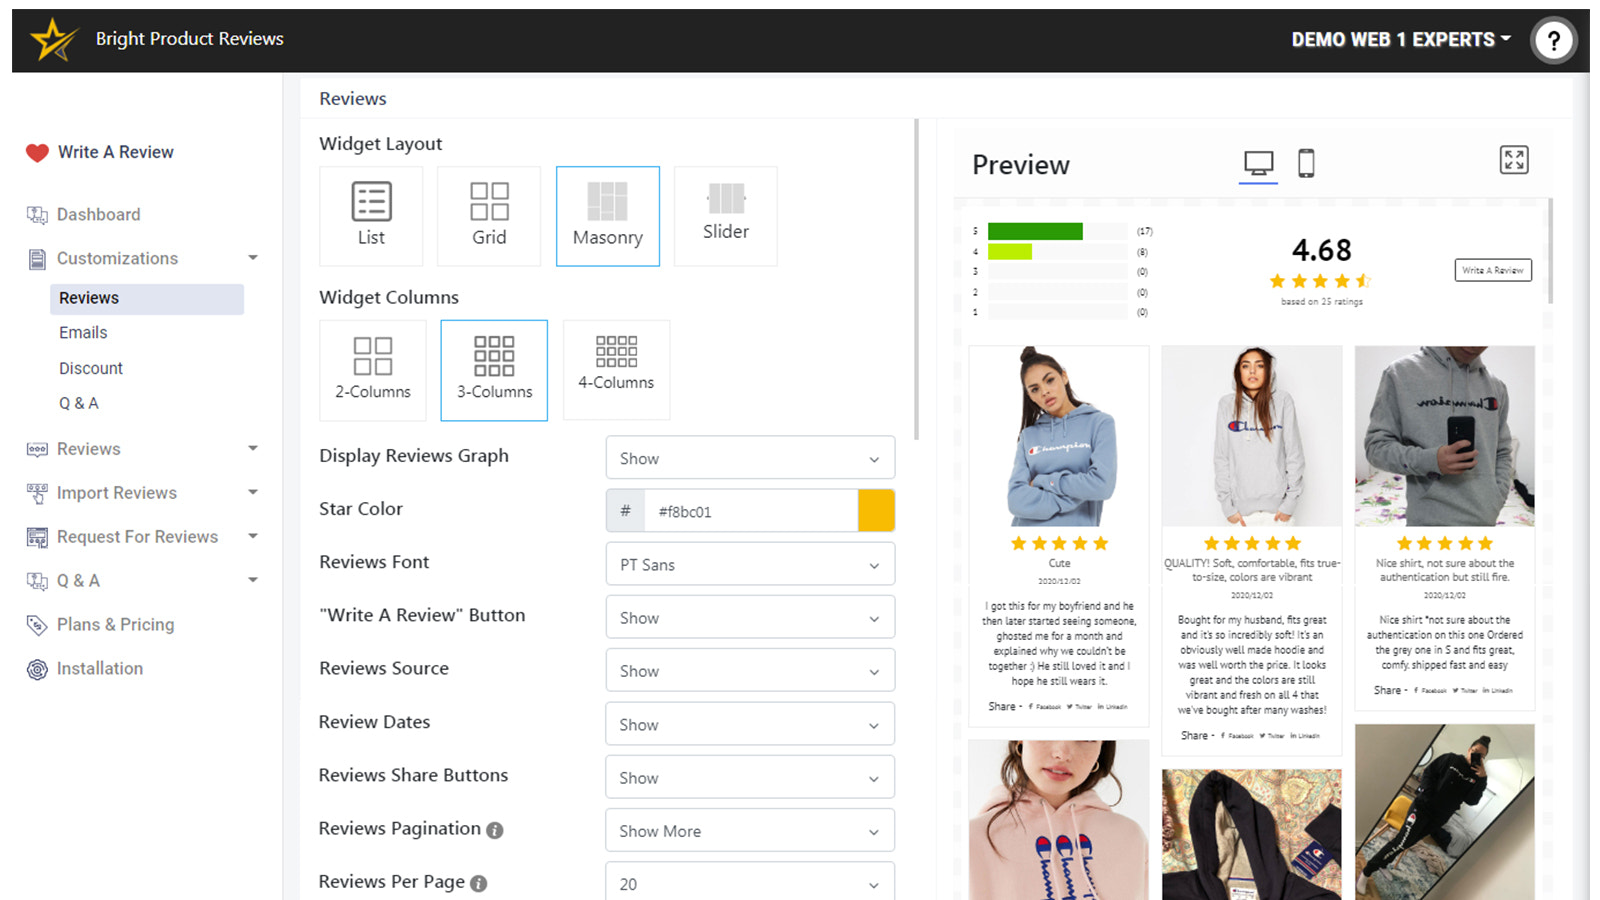 Bright Product Reviews - Reviews Customizations